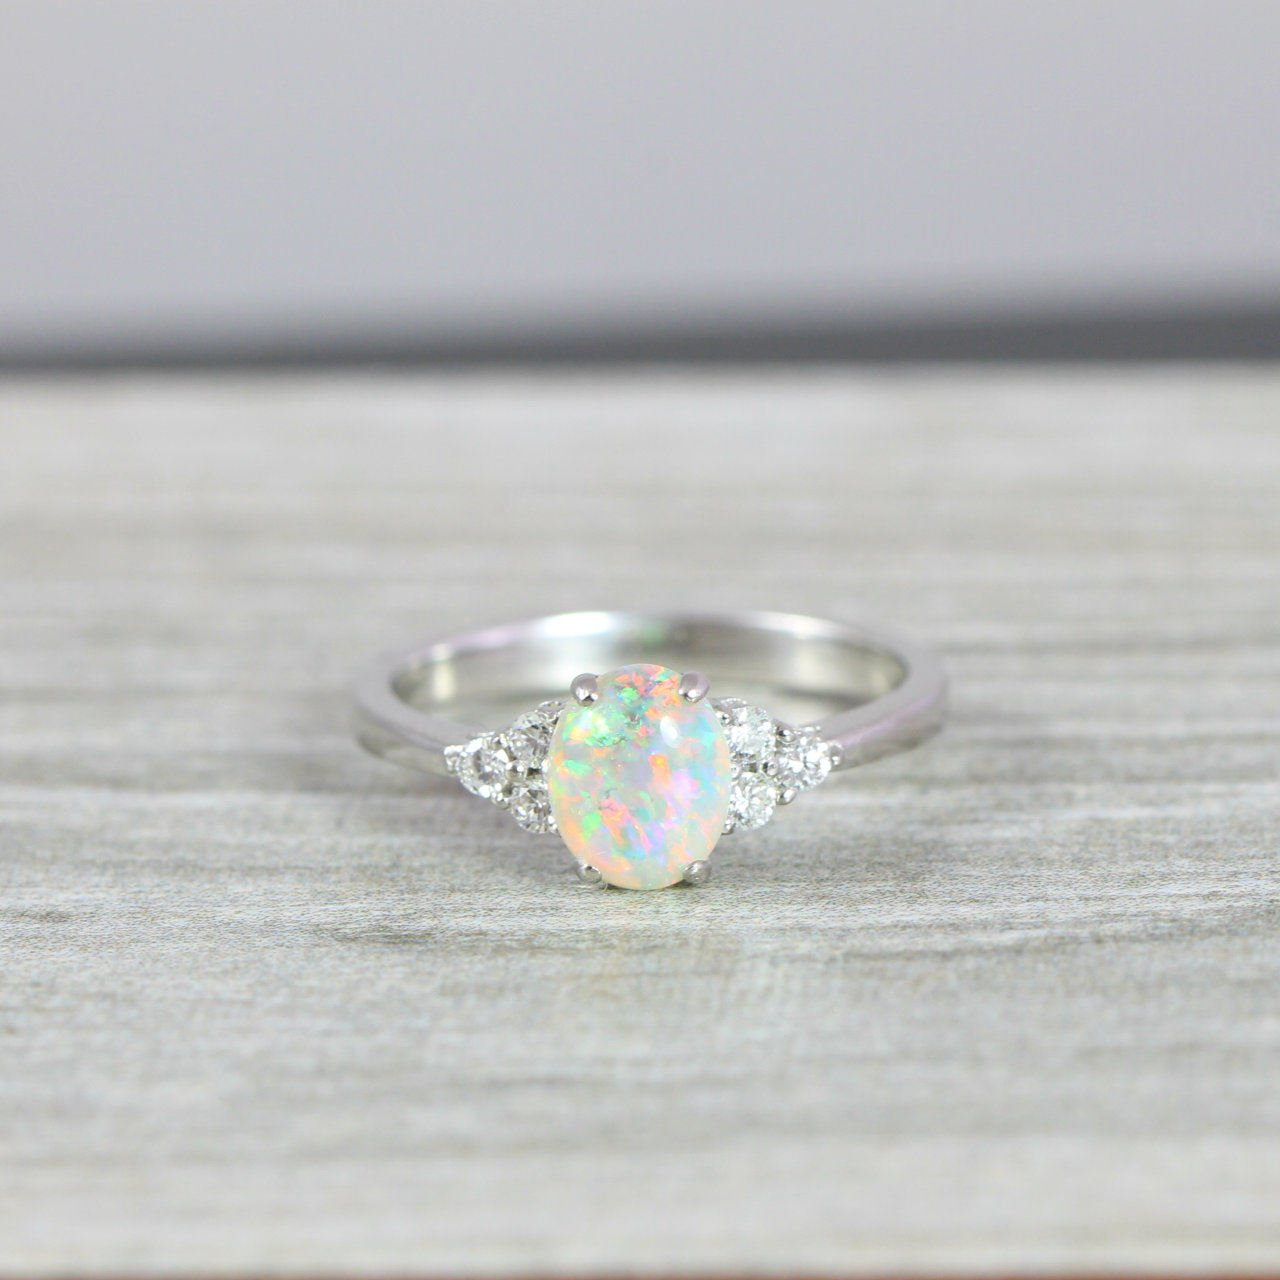 dedd59d9ebce01 Opal and Diamond oval engagement ring in 14 carat white gold ...